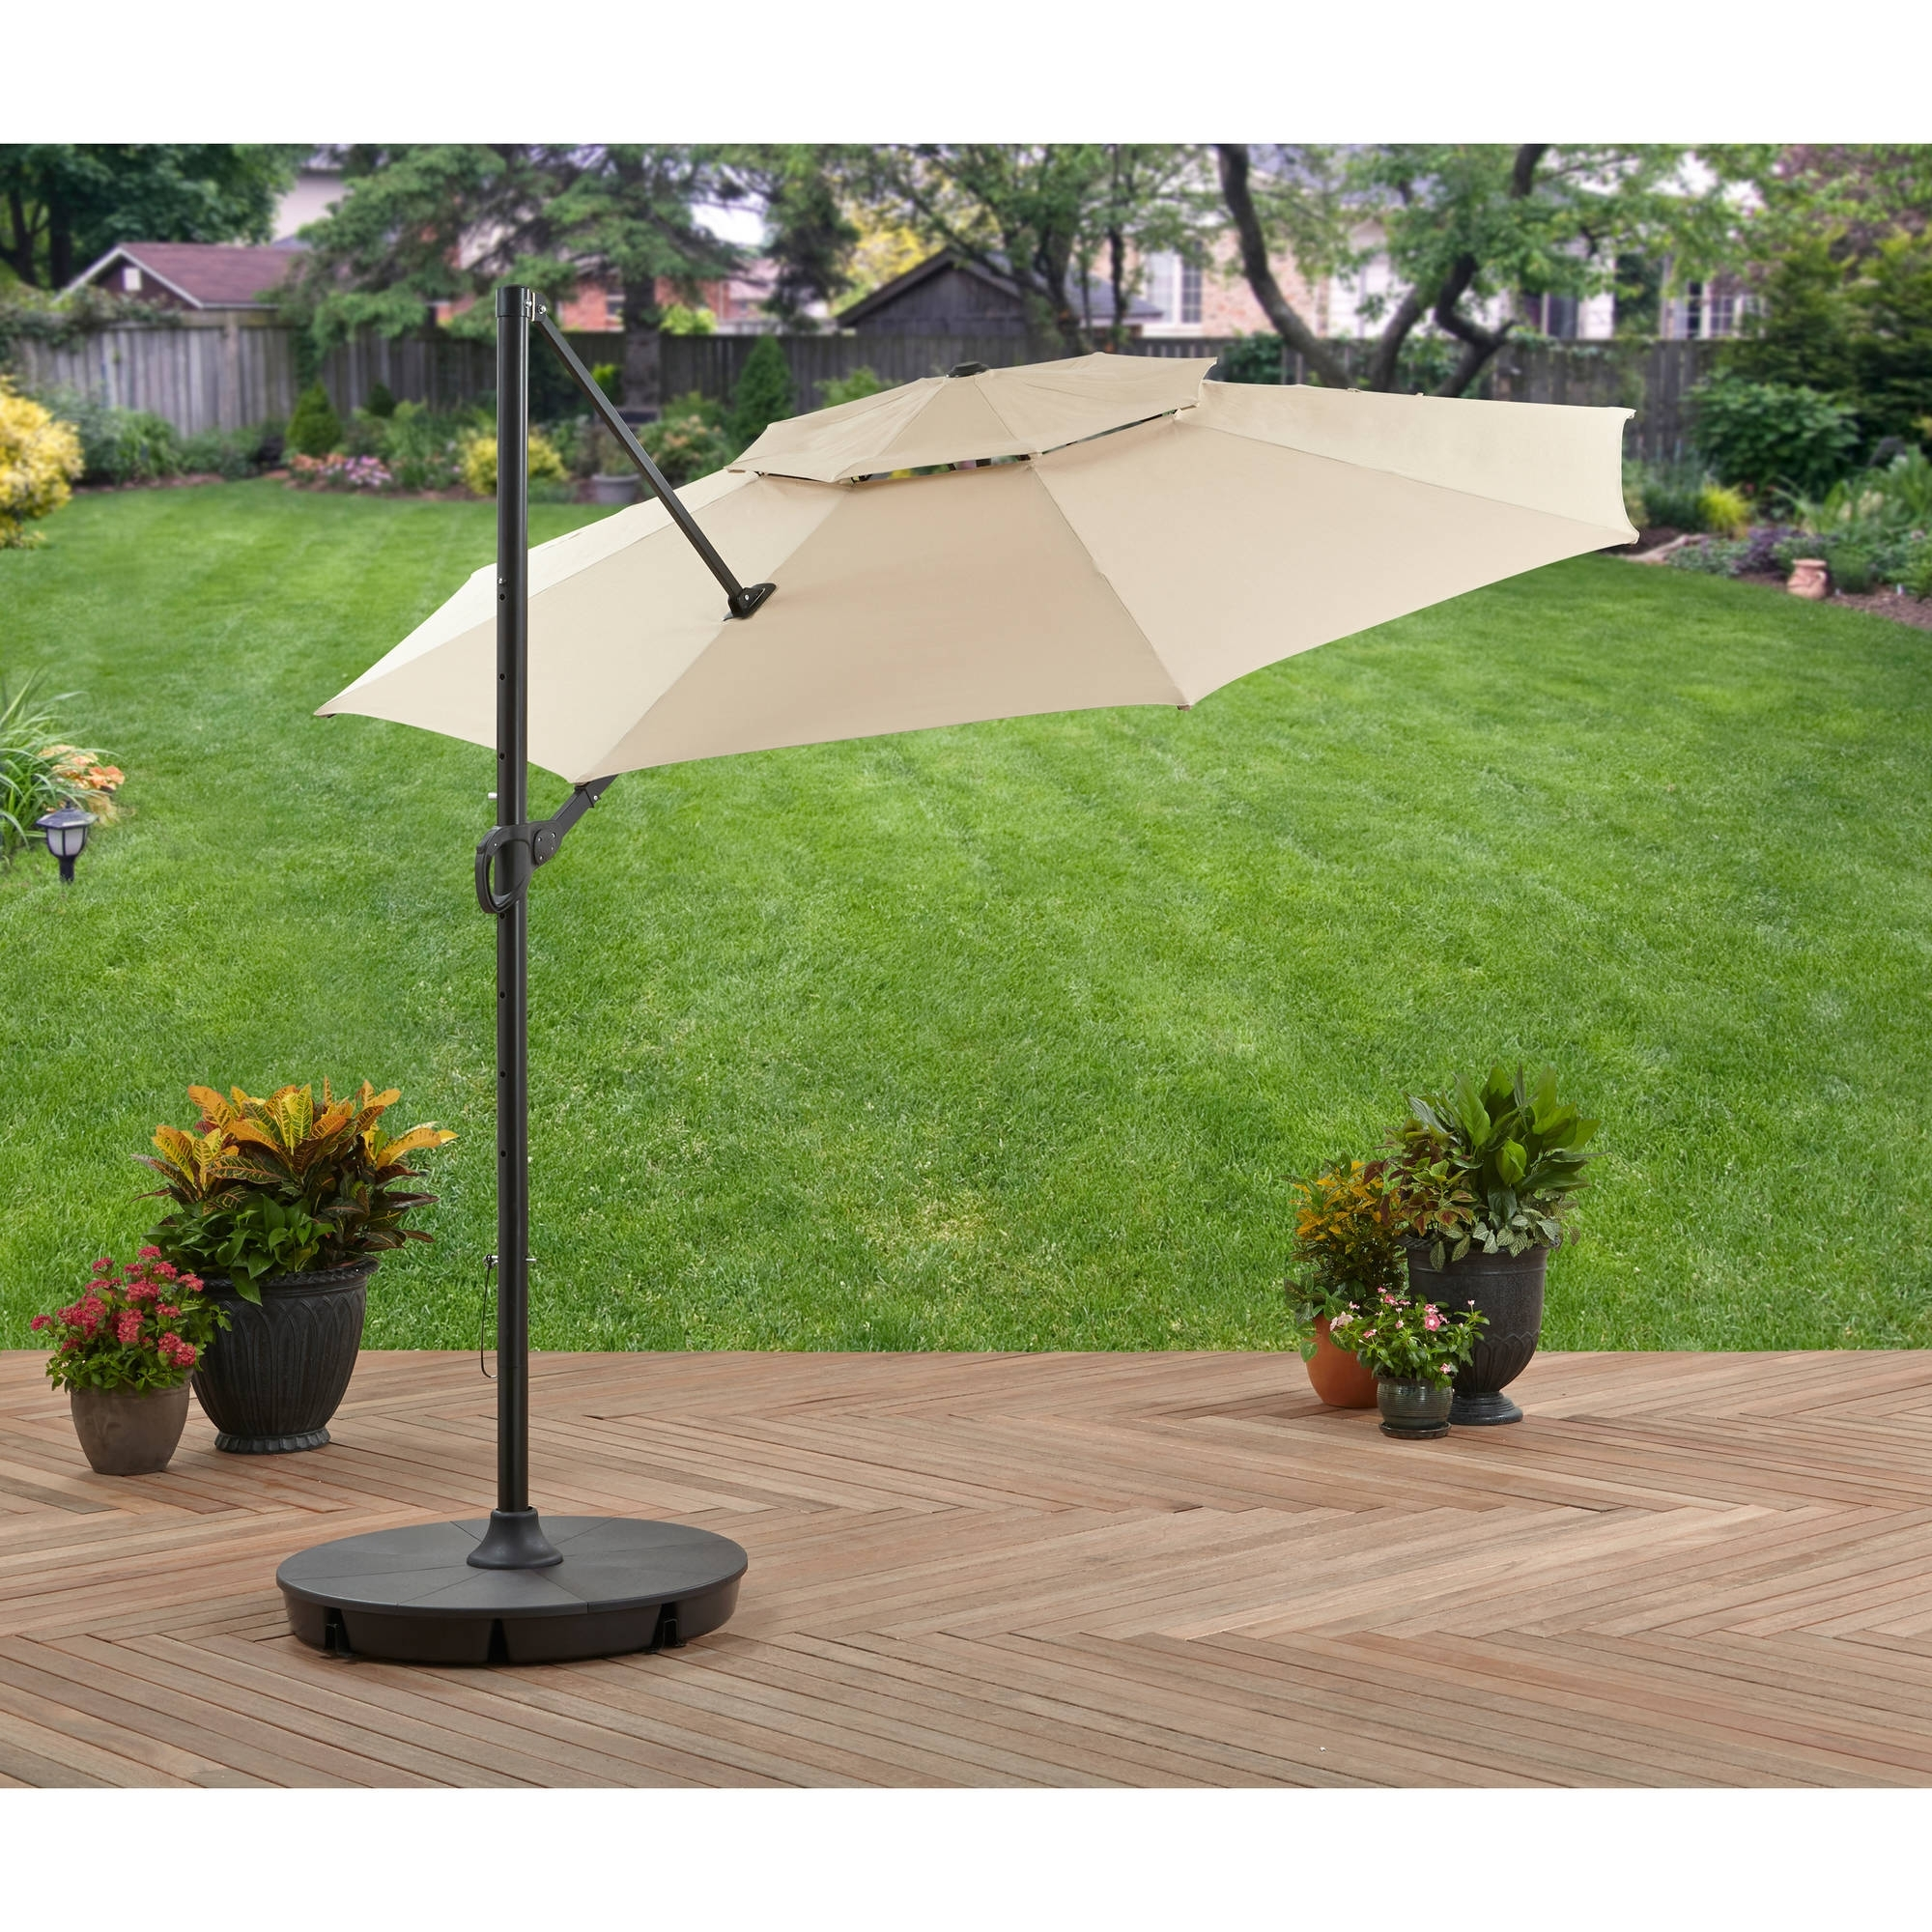 Favorite Walmart Patio Umbrellas Intended For Better Homes And Gardens 11' Offset Umbrella With Base, Tan (View 14 of 20)